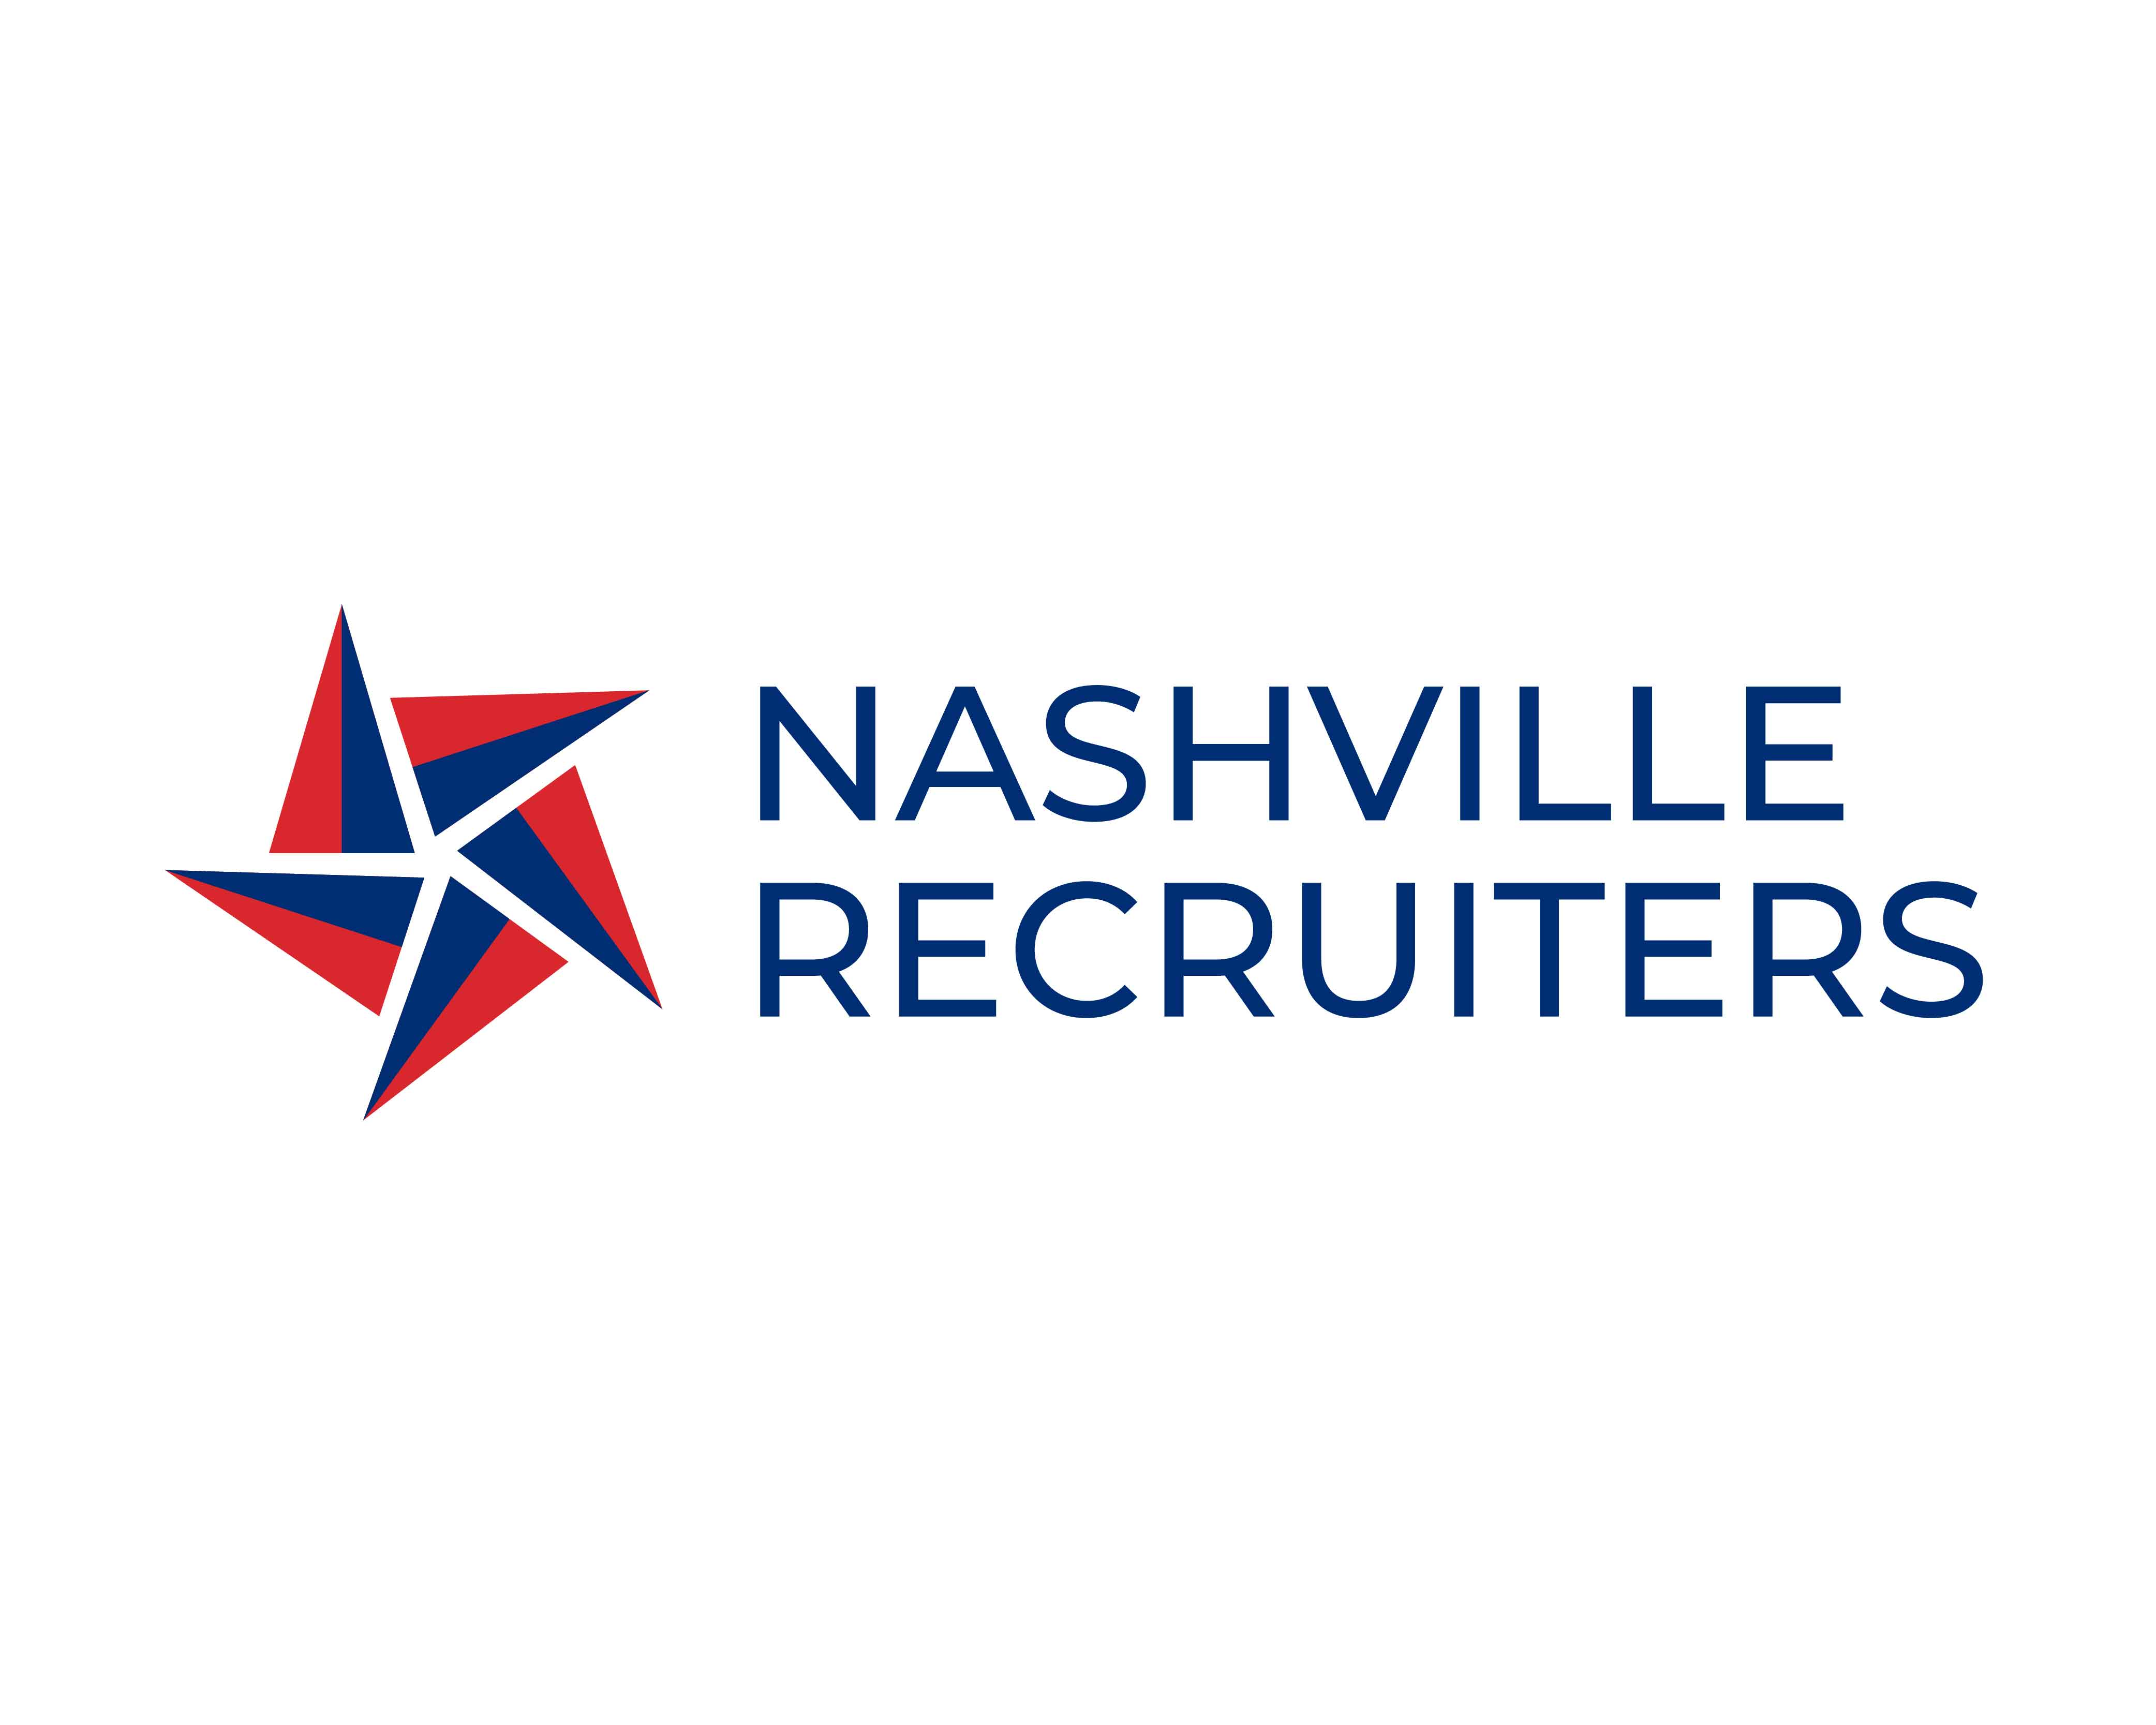 Nashville Recruiters